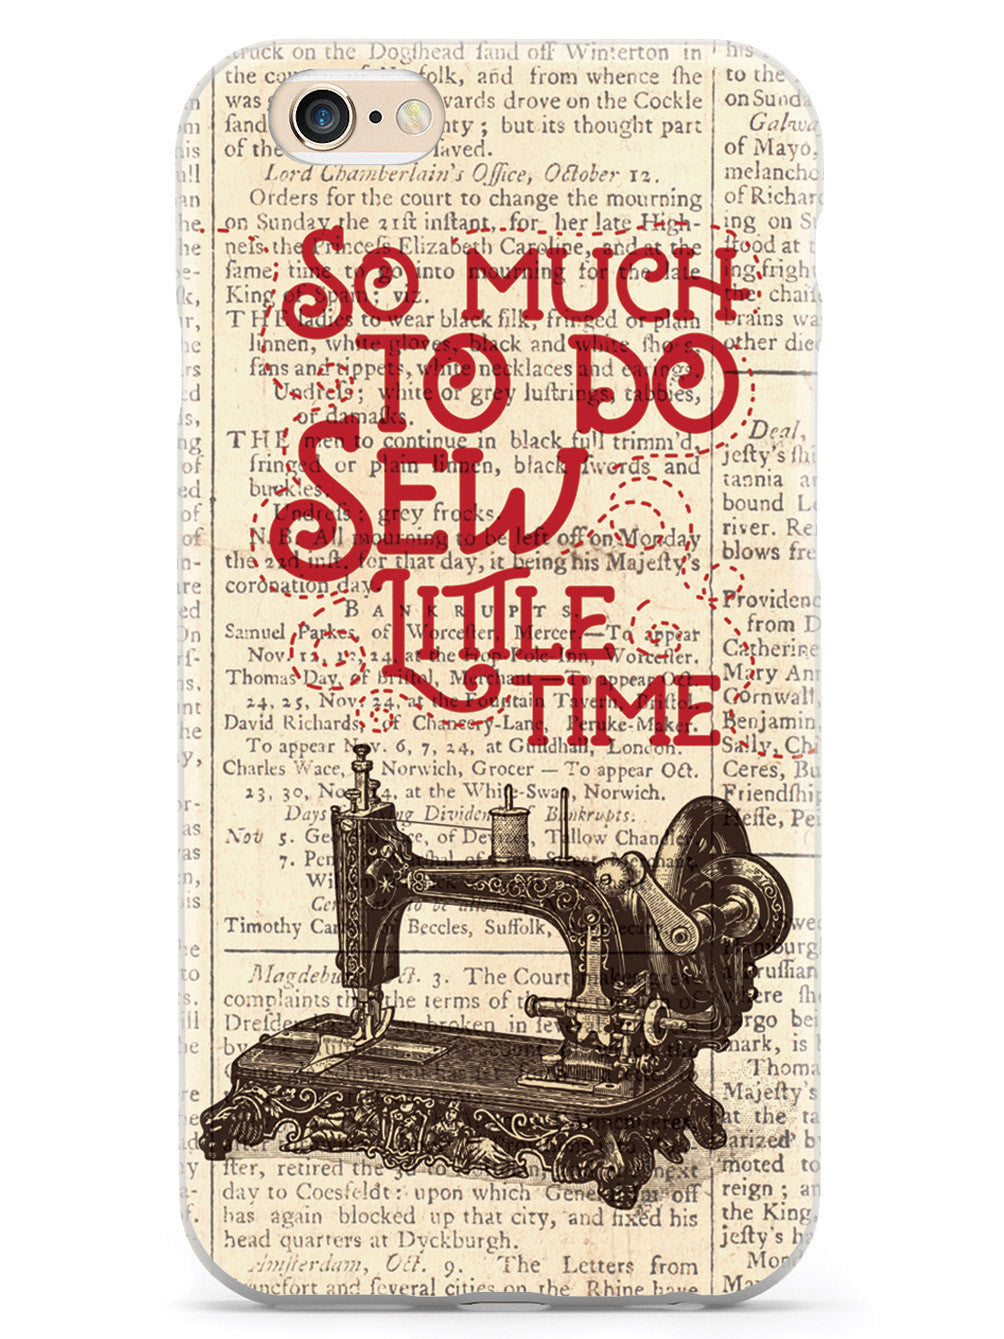 So Much To Do, Sew Little Time Case